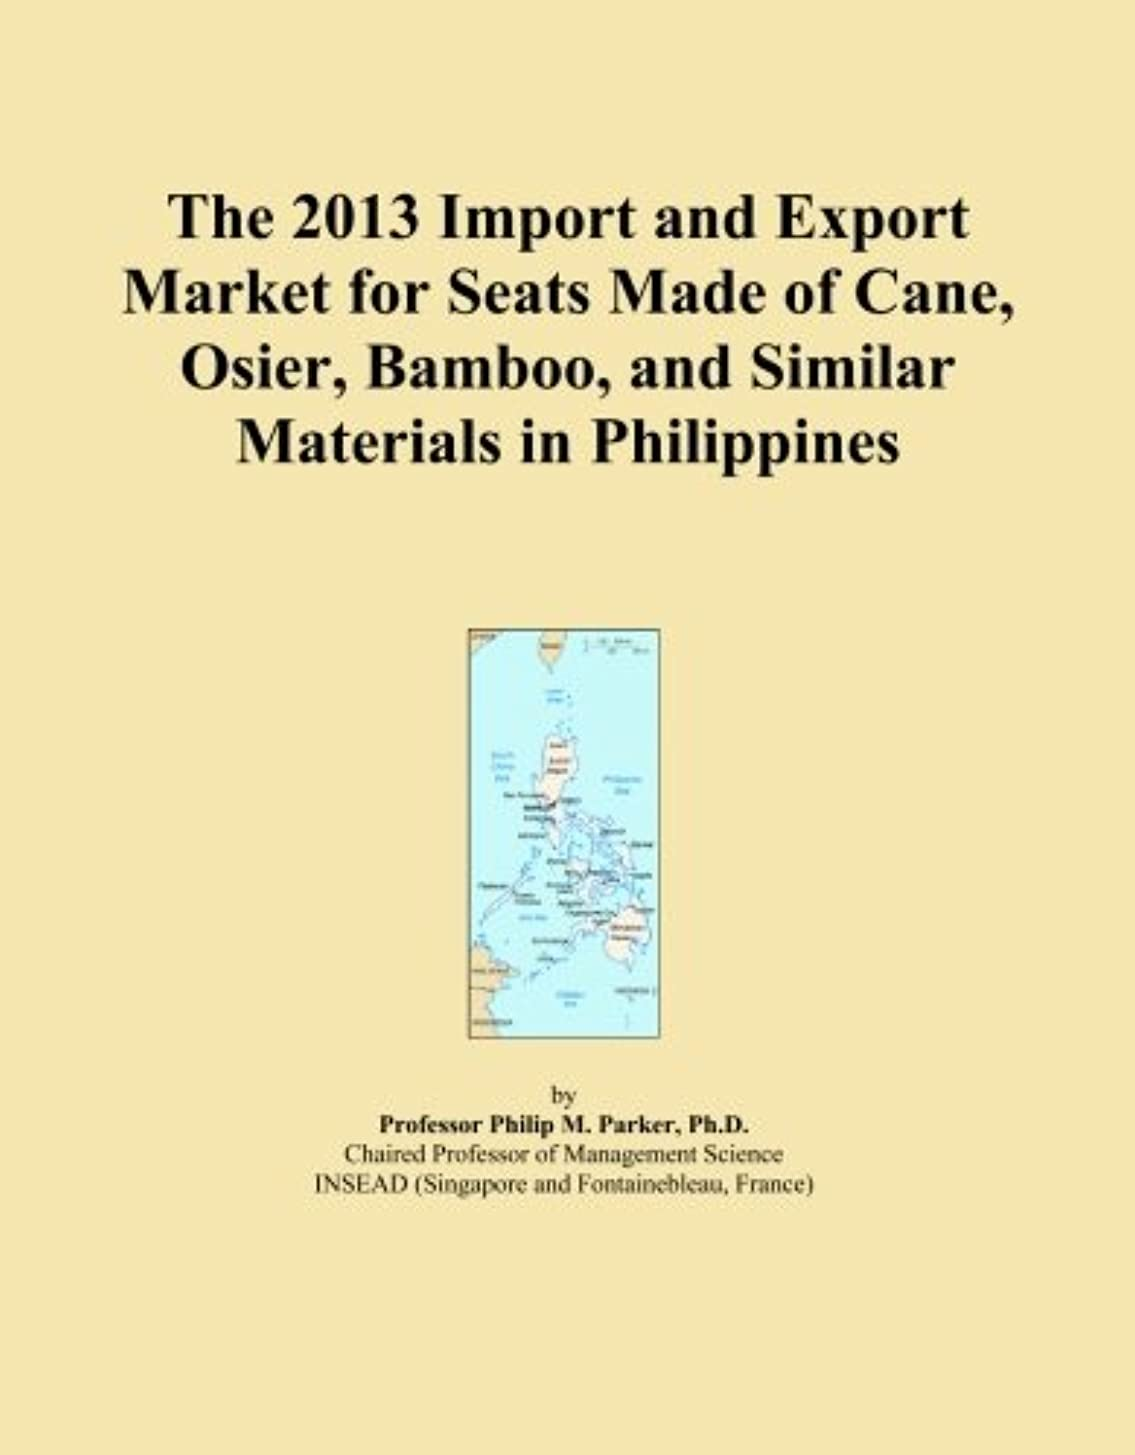 The 2013 Import and Export Market for Seats Made of Cane, Osier, Bamboo, and Similar Materials in Philippines